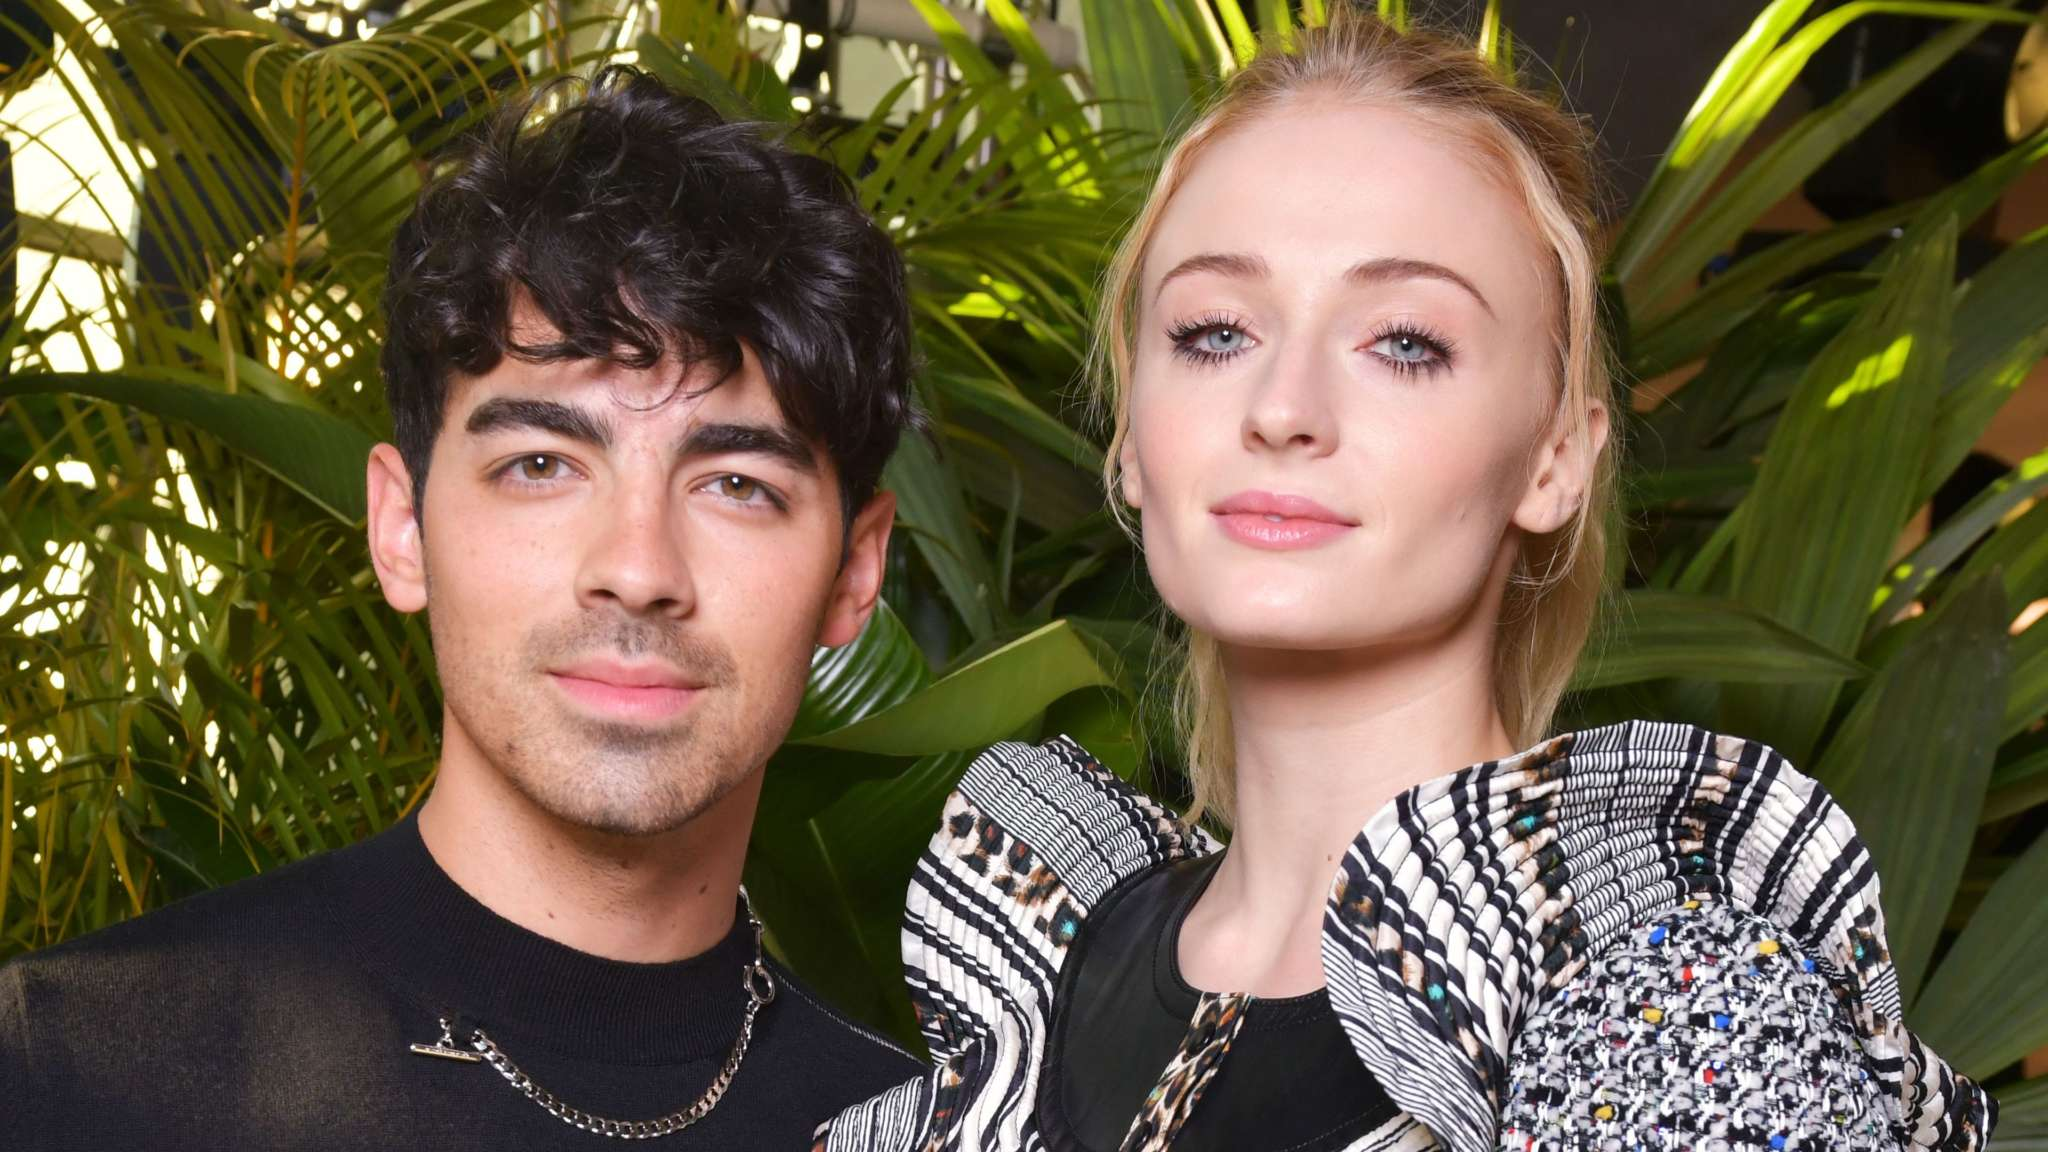 Sophie Turner Shows Off Hilarious Hannah Montana T-Shirt Her Hubby Joe Jonas Gifted Her Before Christmas!